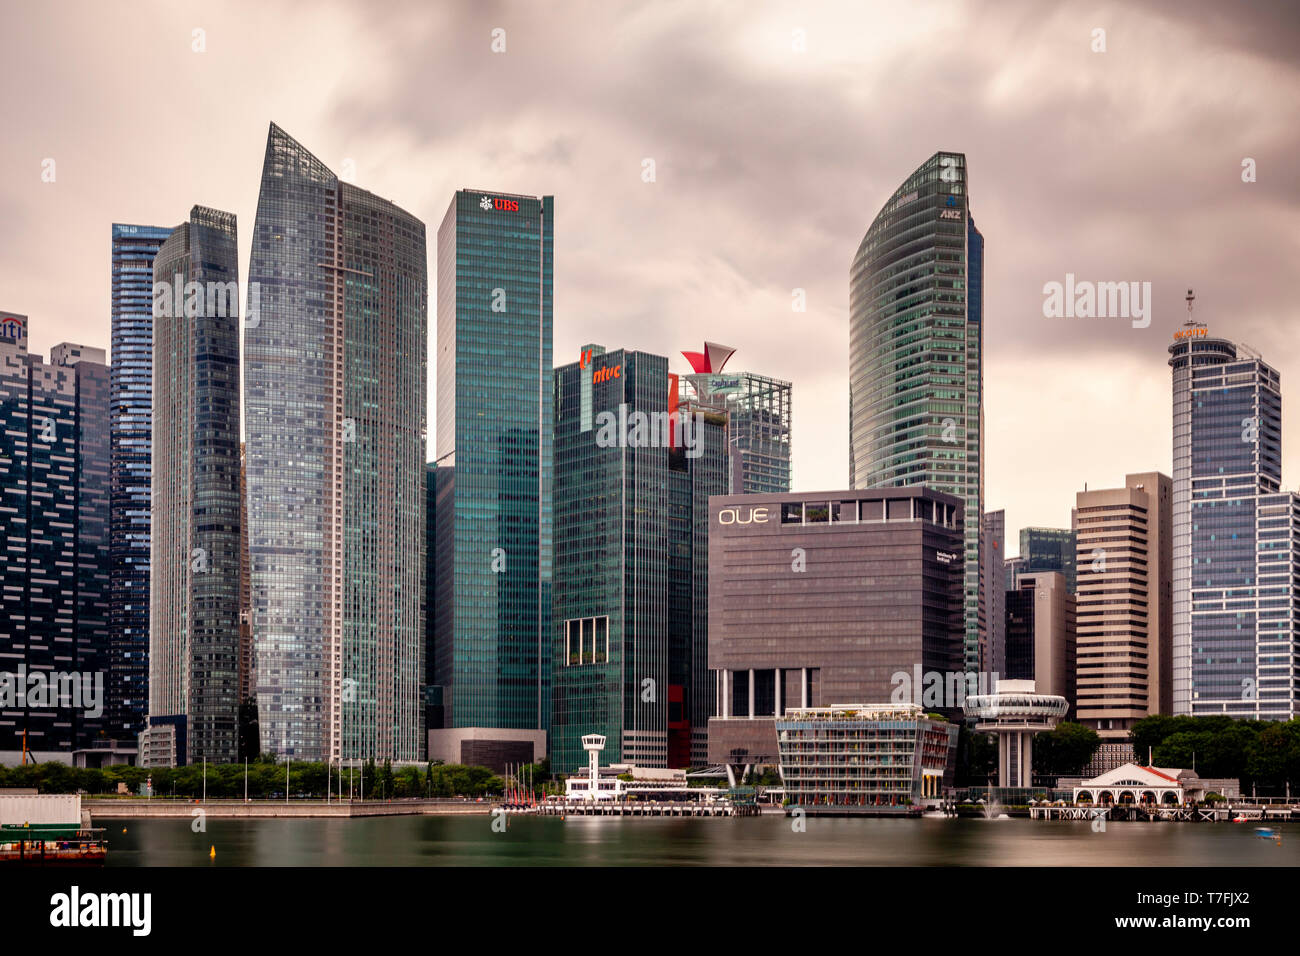 The Singapore Skyline From Marina Bay, Singapore, South East Asia - Stock Image